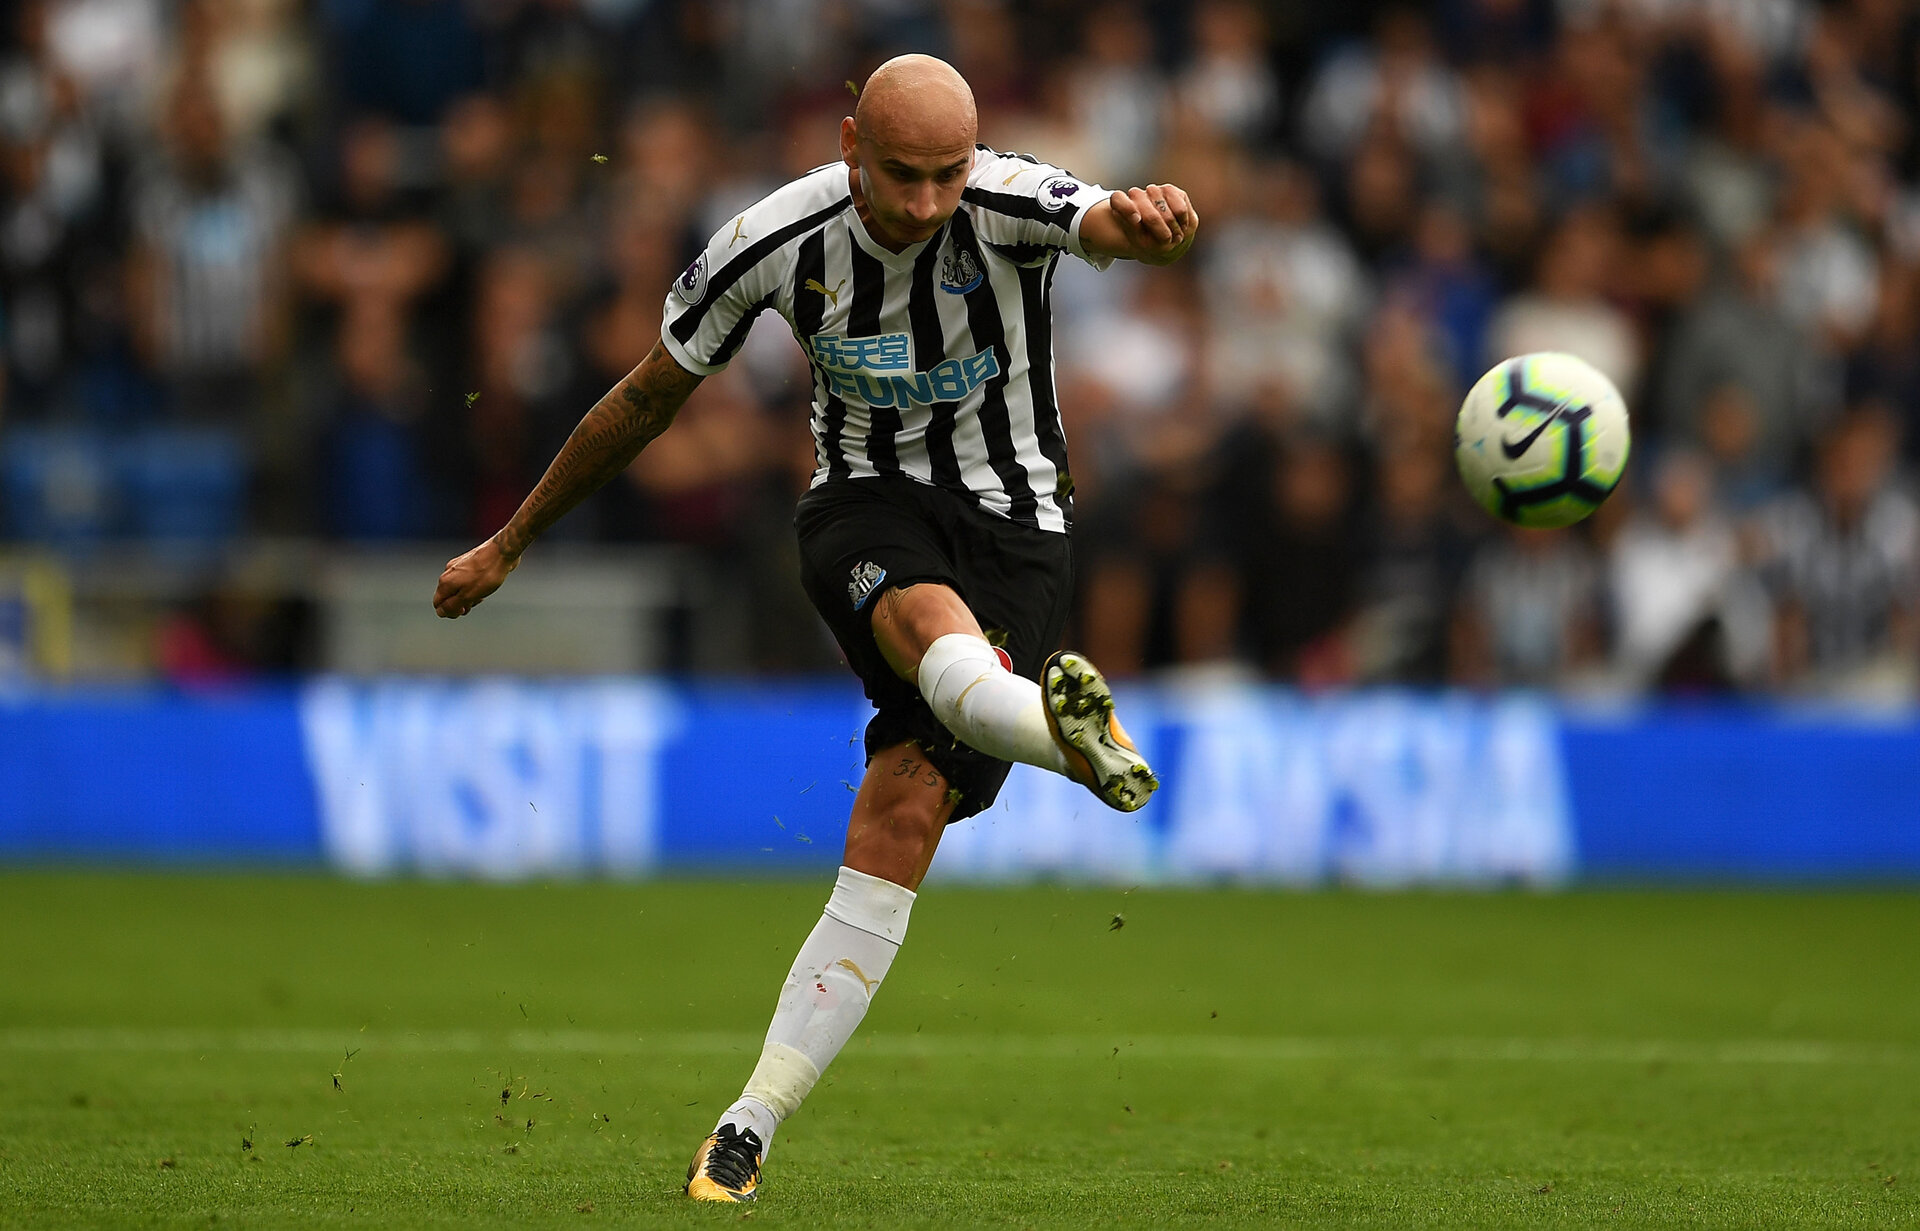 CARDIFF, WALES - AUGUST 18:  Jonjo Shelvey of Newcastle United during the Premier League match between Cardiff City and Newcastle United at Cardiff City Stadium on August 18, 2018 in Cardiff, United Kingdom.  (Photo by Harry Trump/Getty Images)